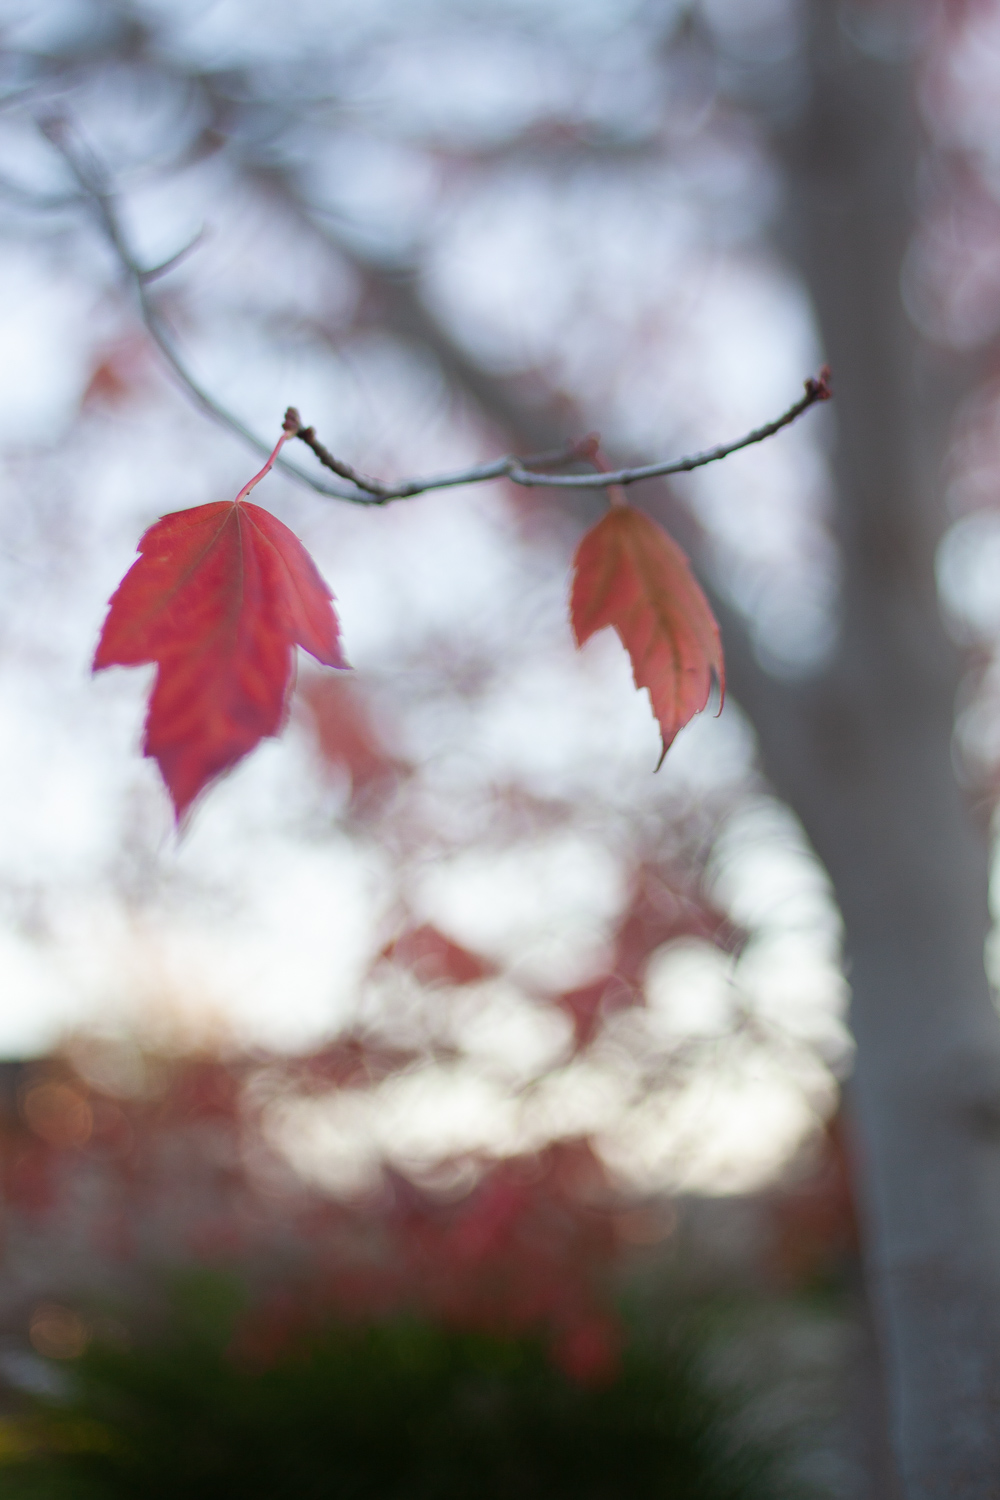 red leaf on a tree - 5 Ways to Make Extraordinary Photographs of Ordinary Subjects